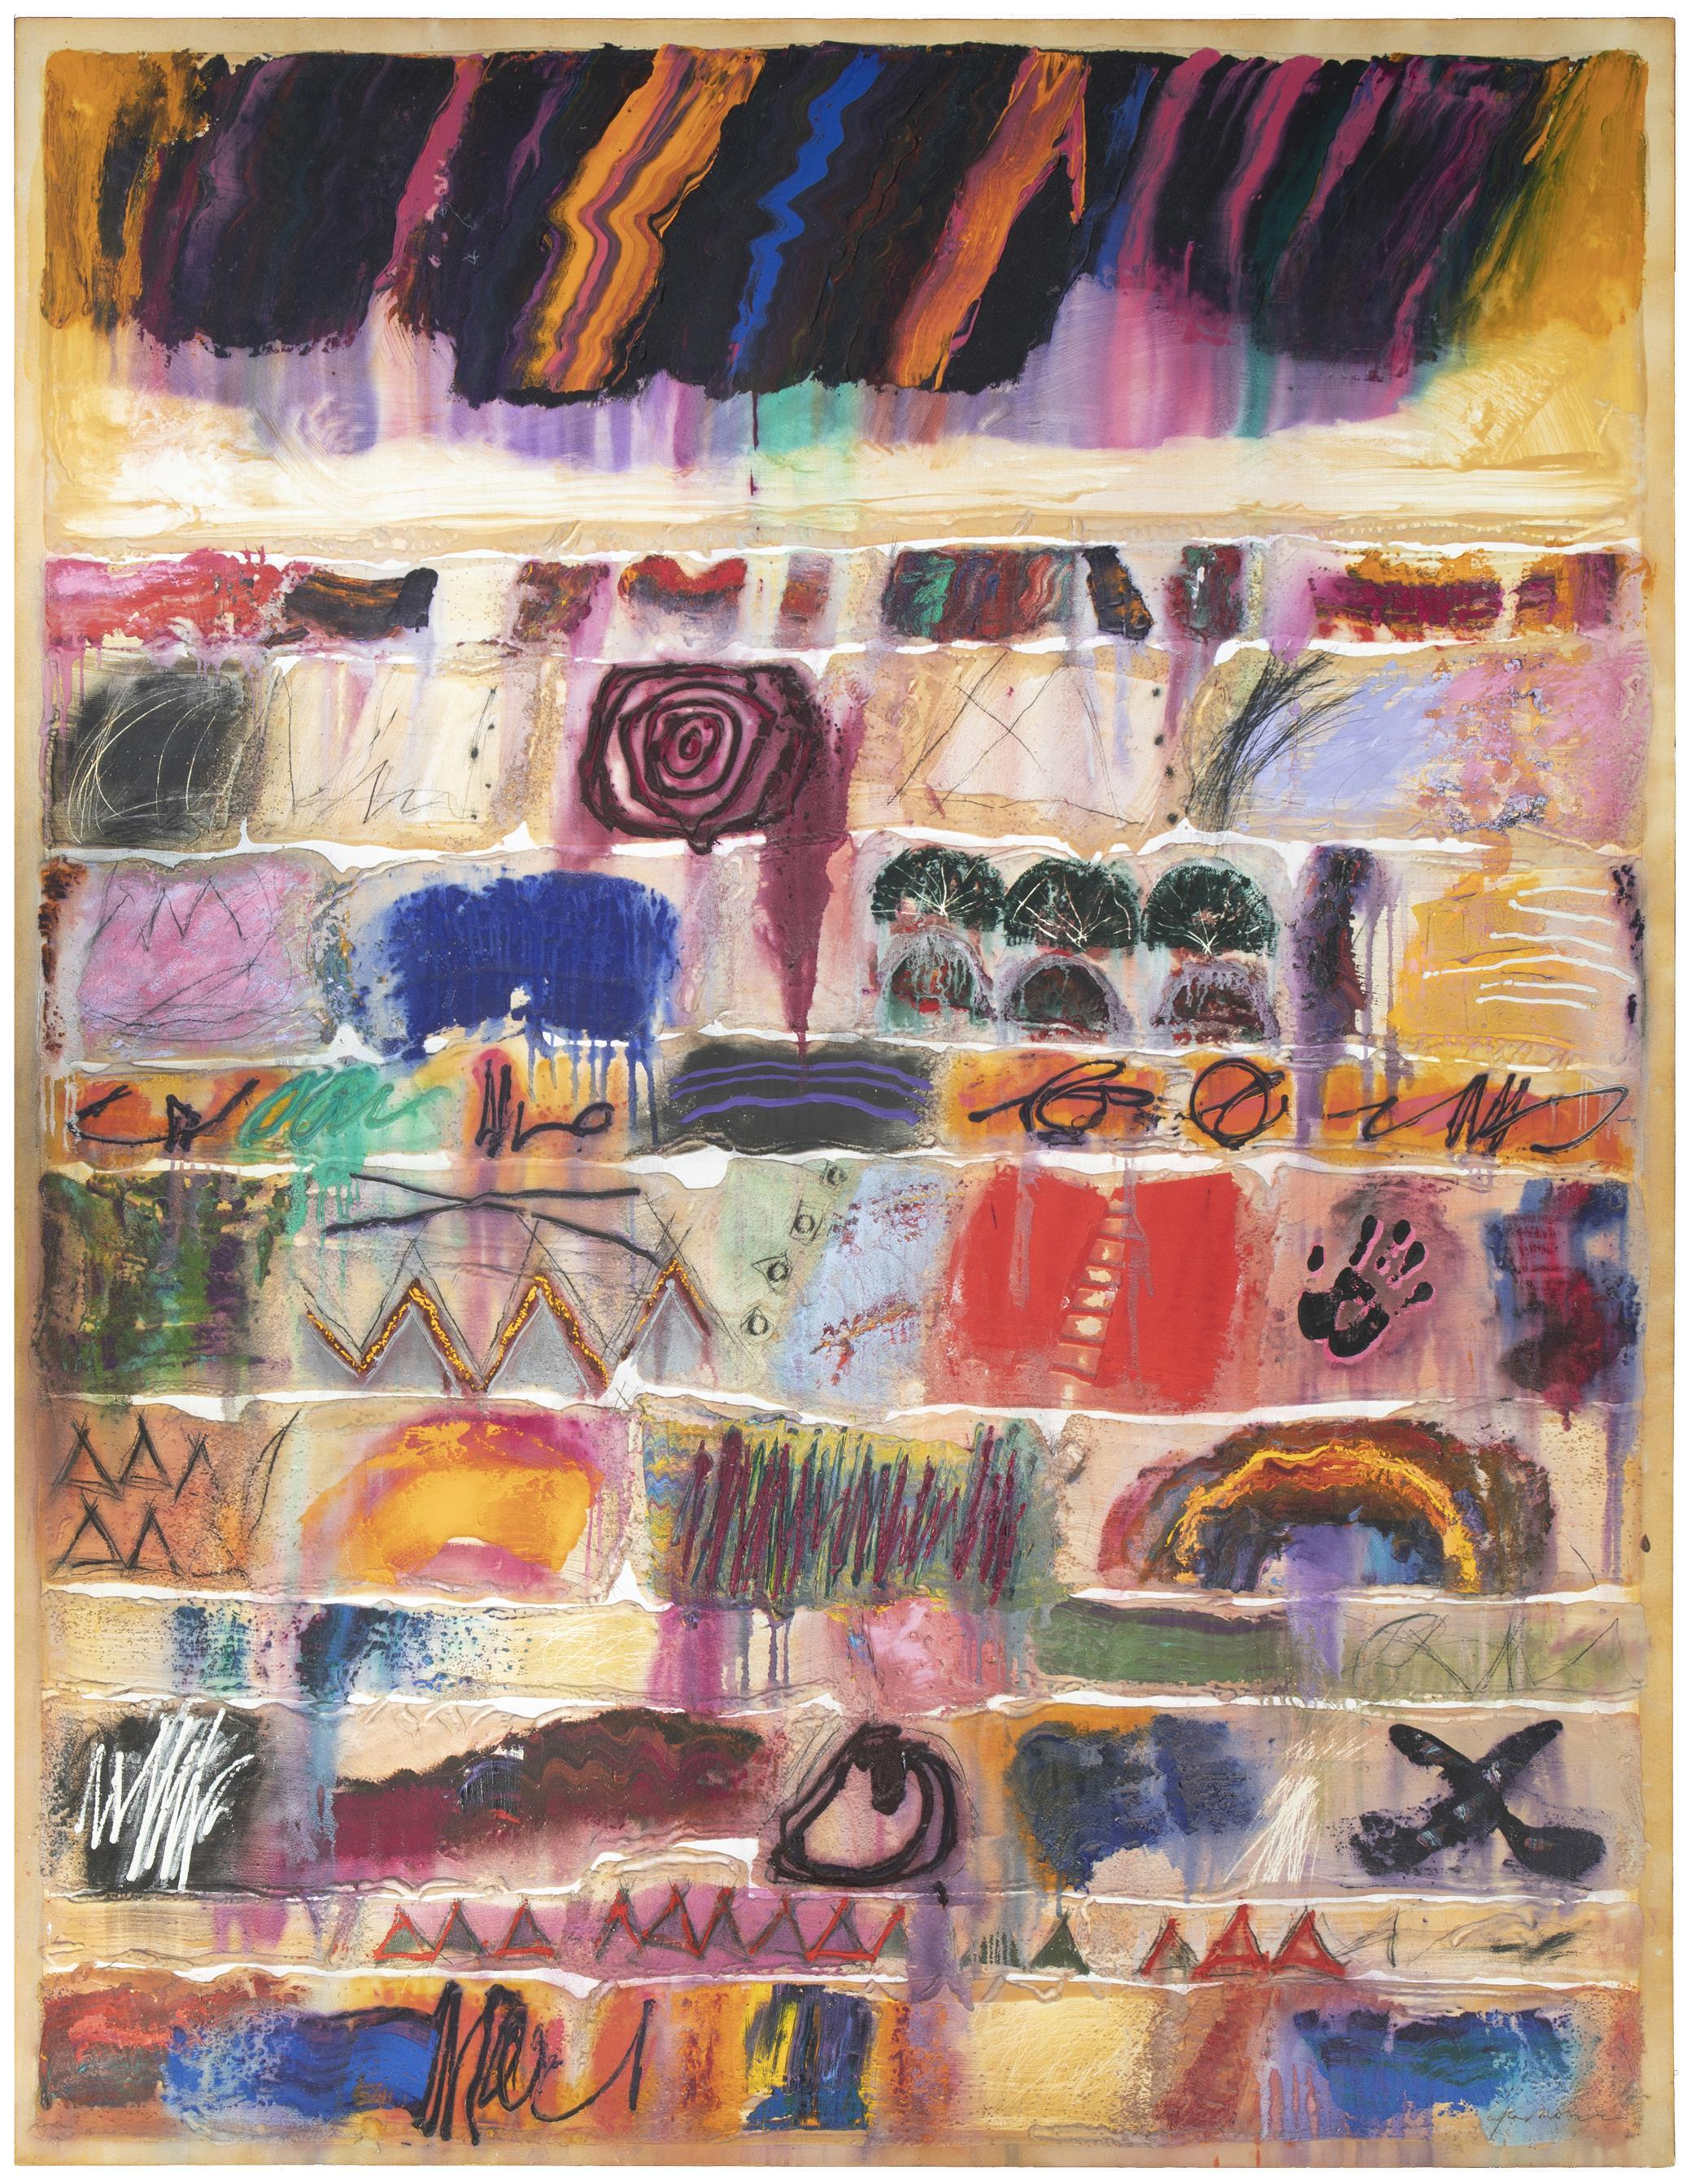 """Dick Jemison, (b. 1942, American), """"Dreamwork V,"""" 1988, Mixed media and sand on canvas, 108"""" H x 84"""" W"""